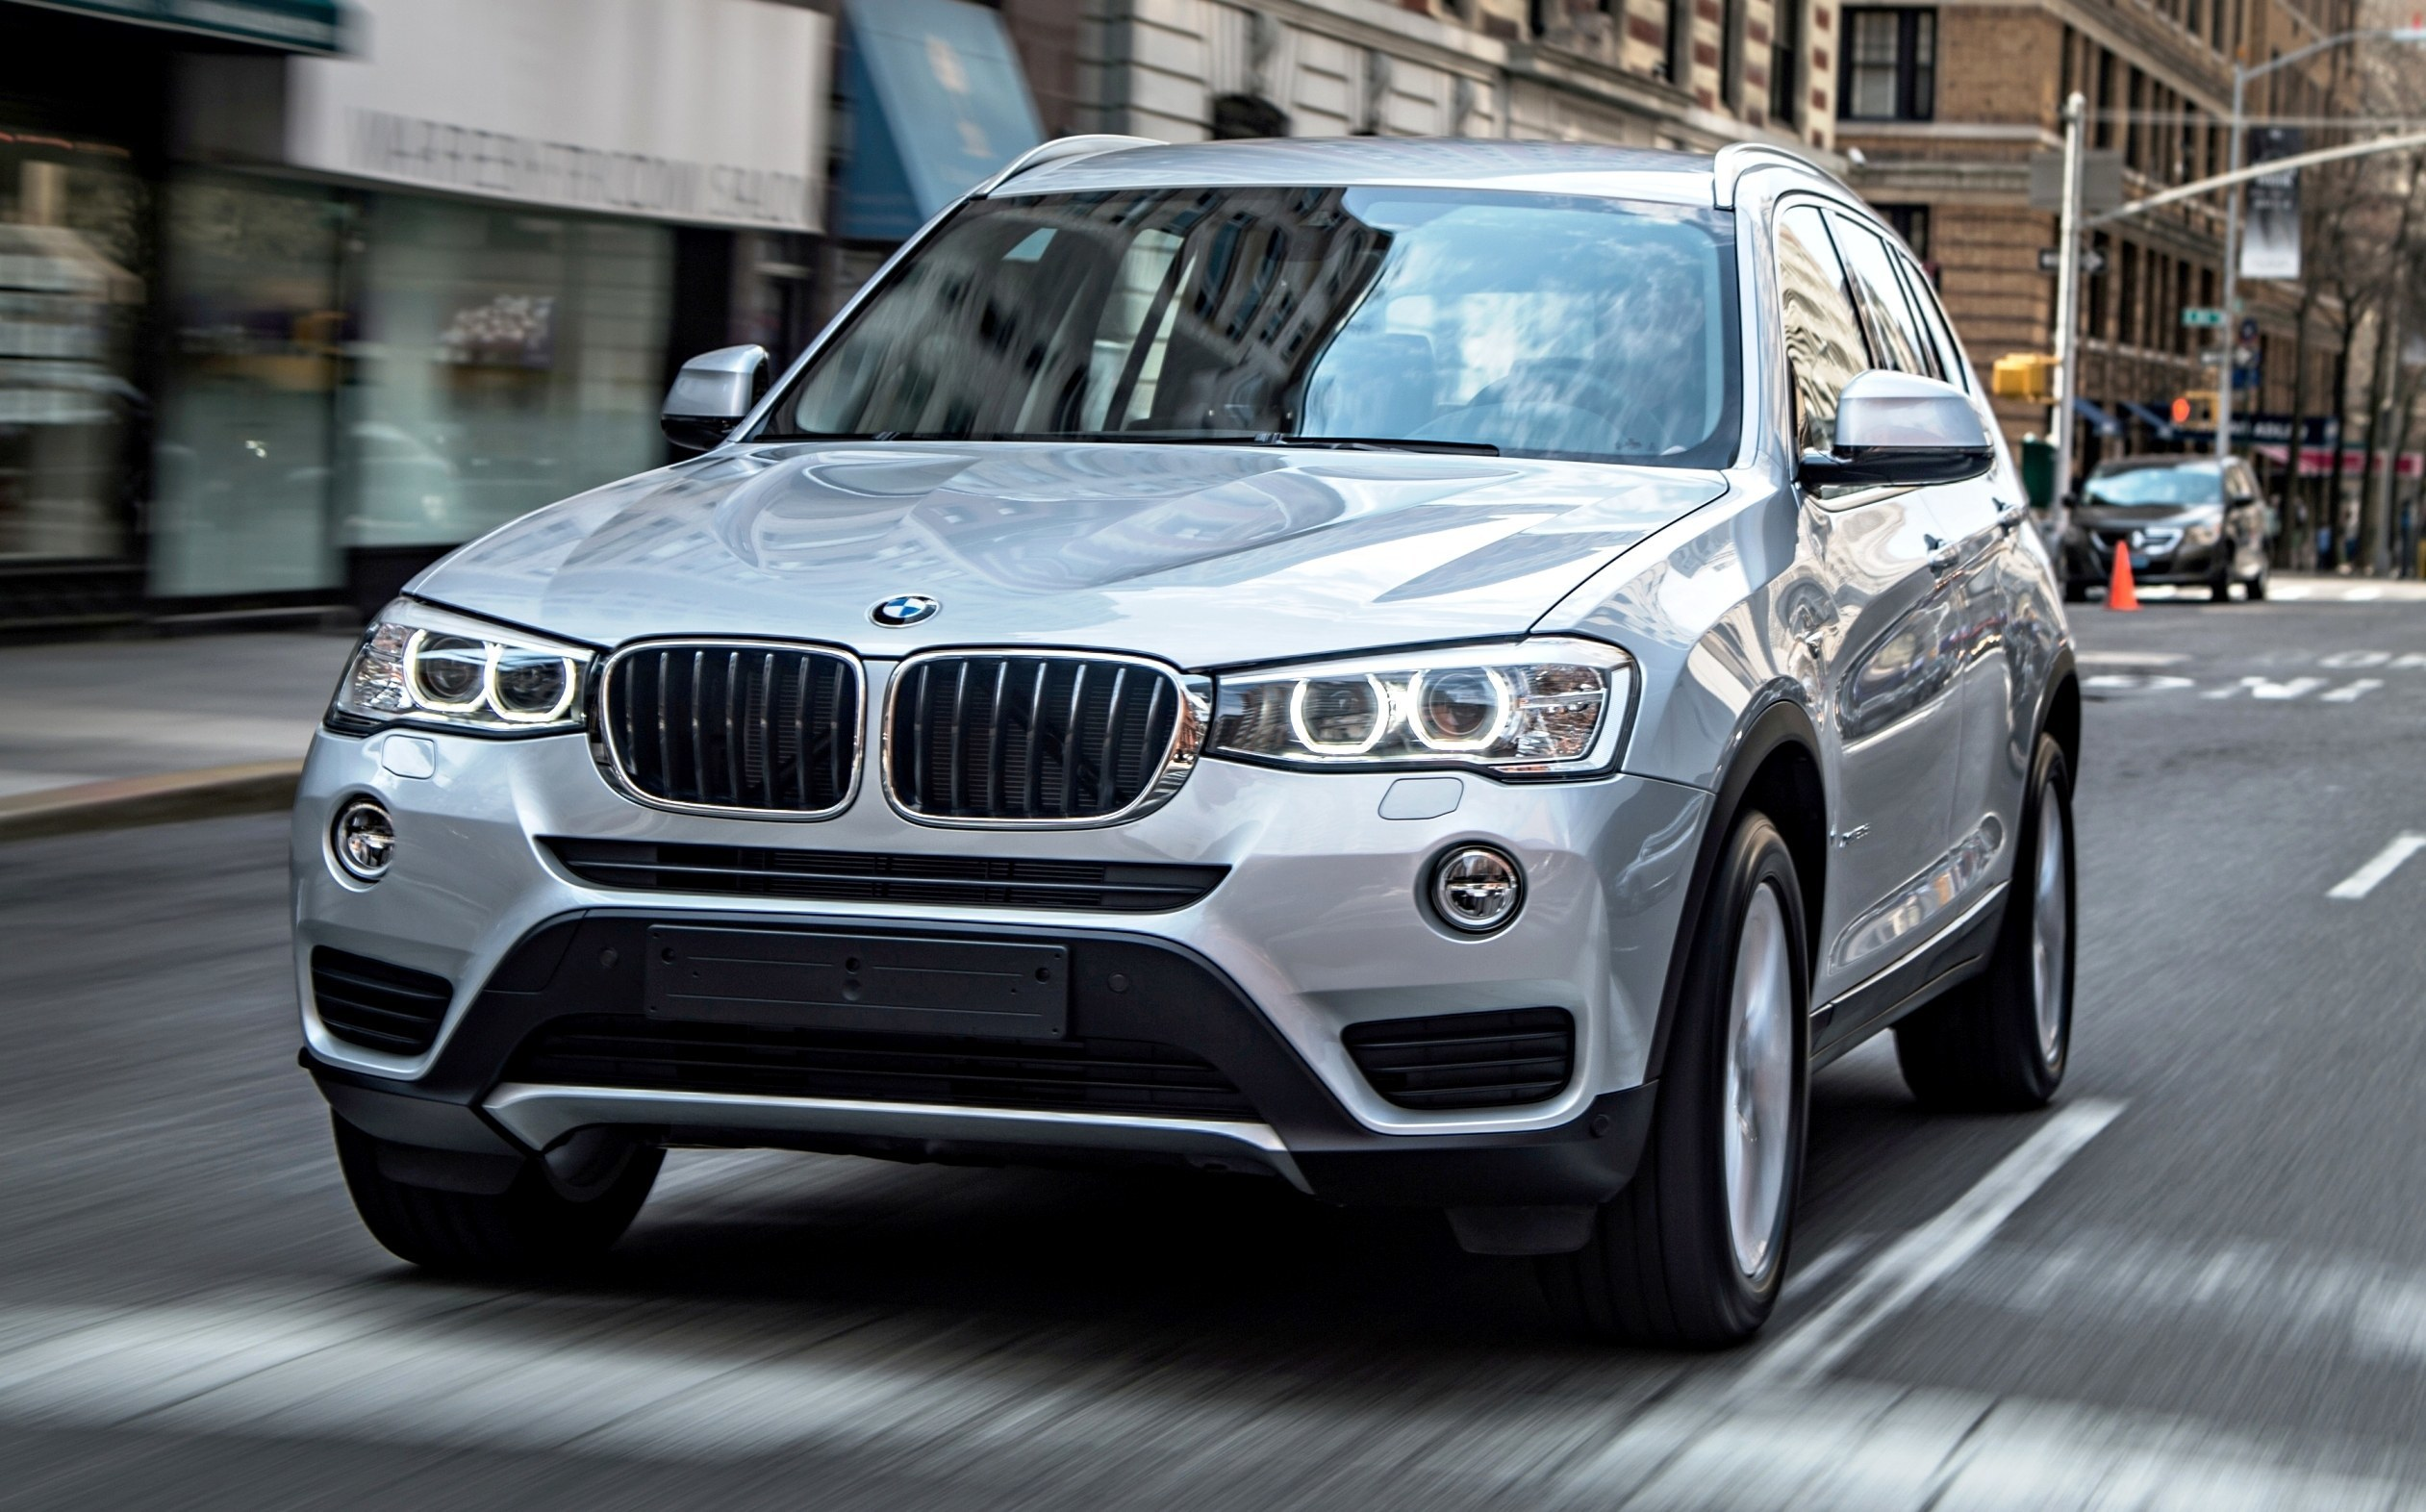 2015 BMW X3 Xline Vs M Sport Pricing Specs With 100 New Reallife. 2015 BMW X3 Xline Trim Exteriors. BMW. BMW X3 Suspension Diagram At Scoala.co